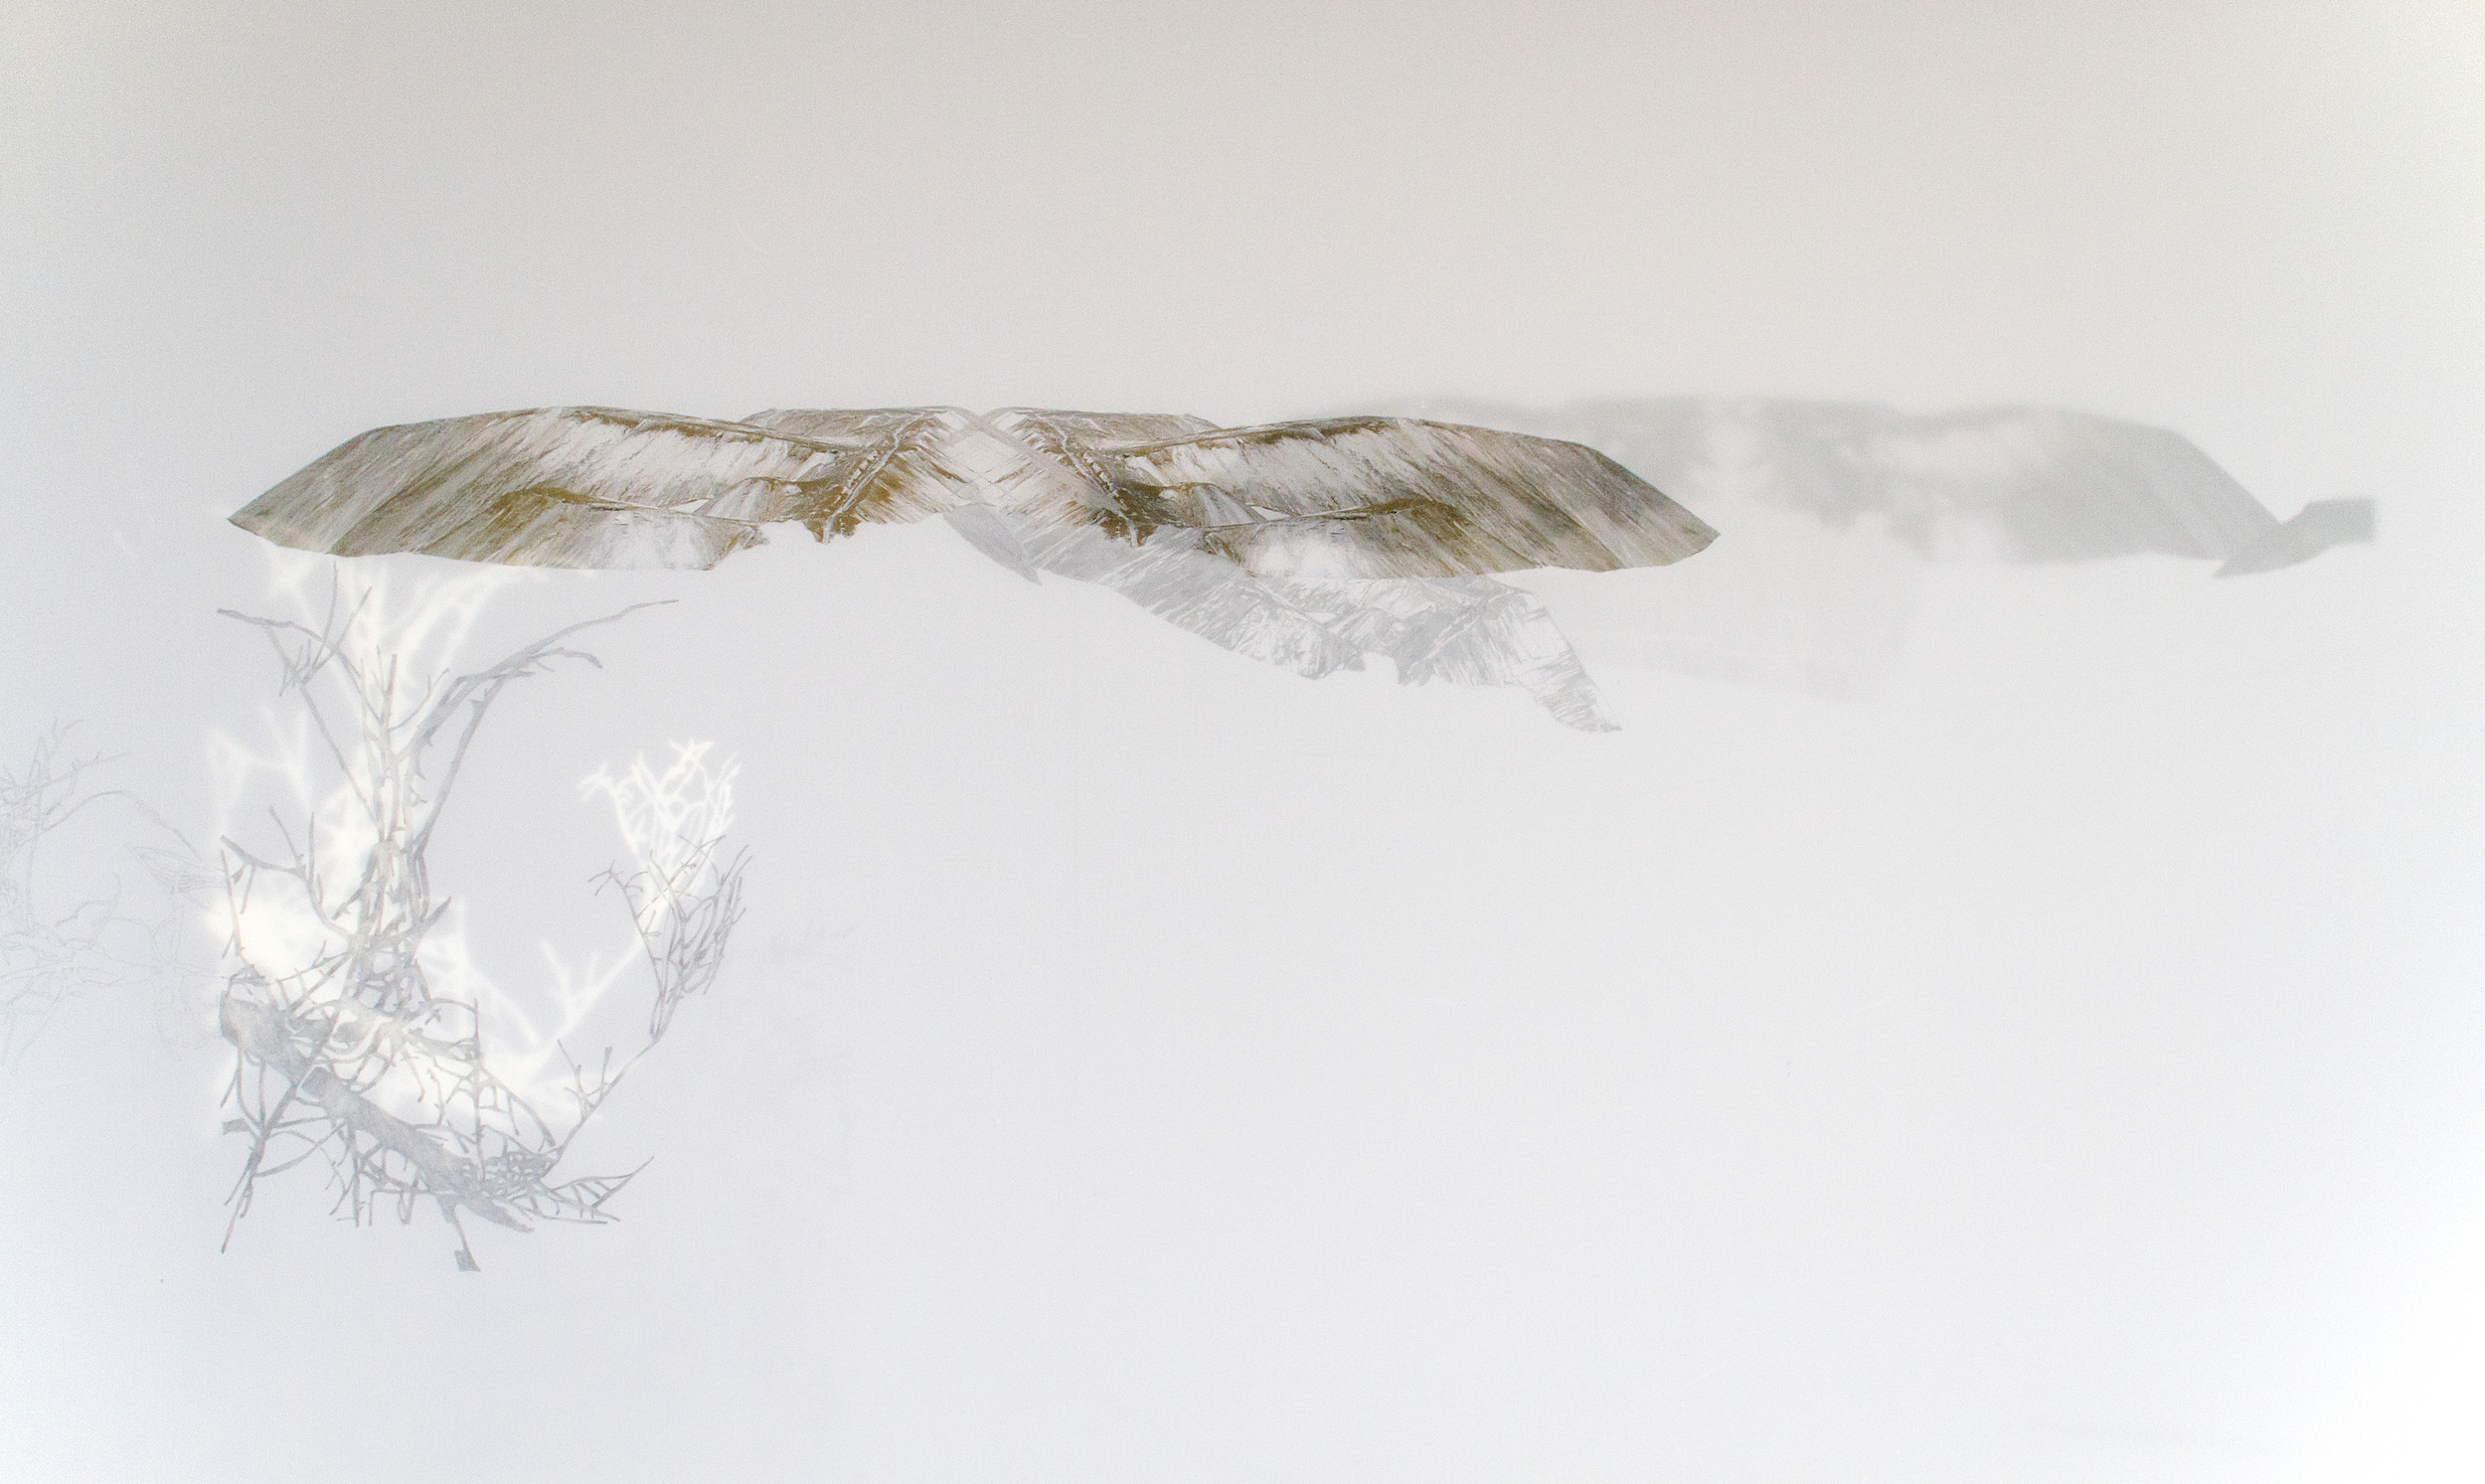 Halde 1 ,Digital printing, graphite and acrylic paint on 2 fold sheets of Mylar paper,82 cm x 62 cm,2012 @Cara Déry  Photo by Jean-Michael Seminaro